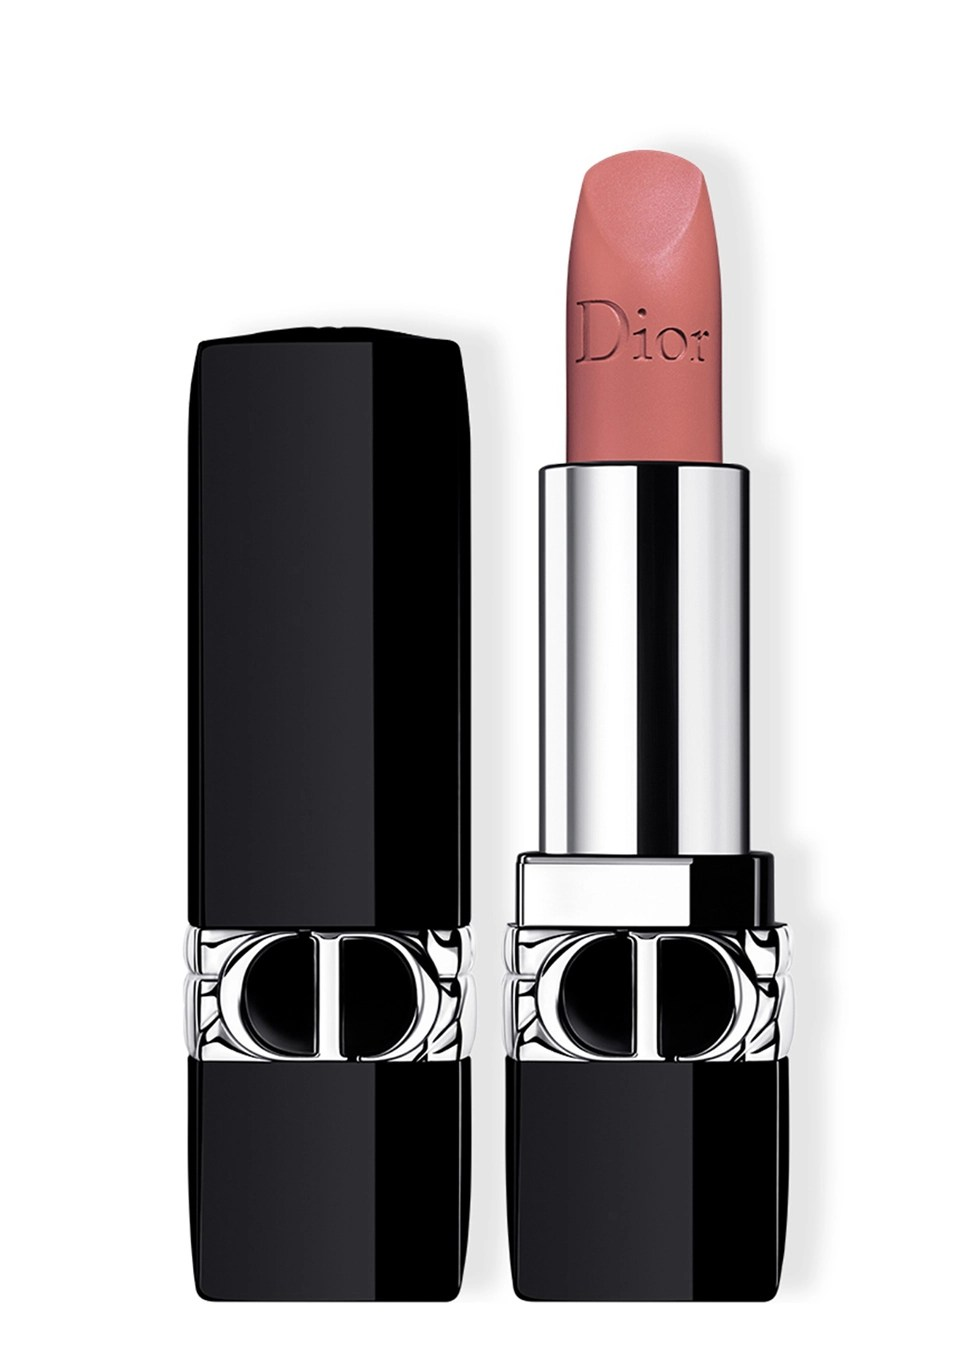 Nude Look Dior Rouge Dior Couture Colour Lipstick - Matte - Harvey Nichols